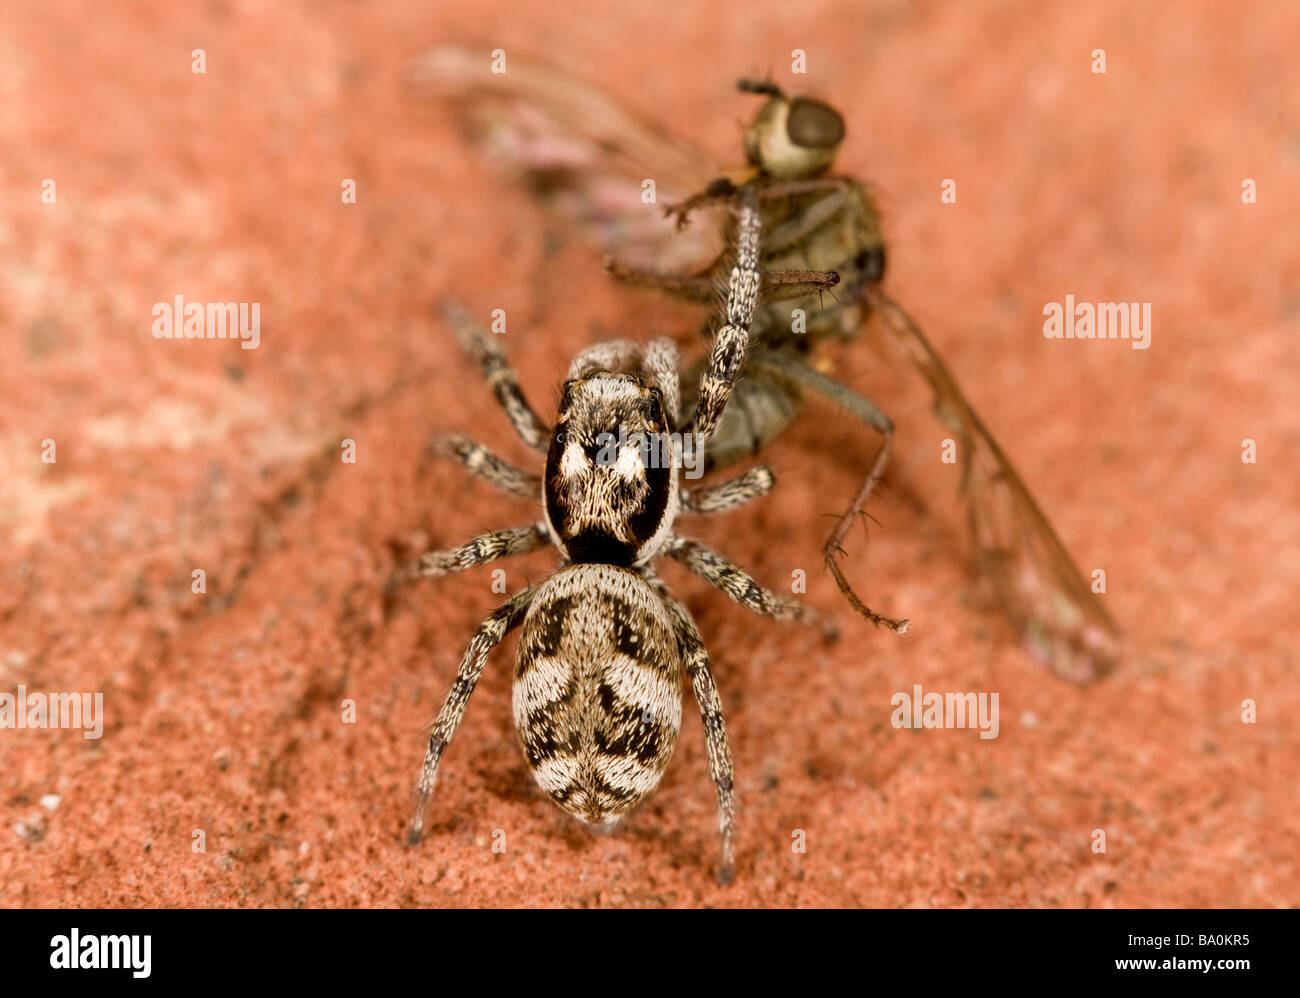 Zebra jumping spider Salticus scenicus with prey - Stock Image